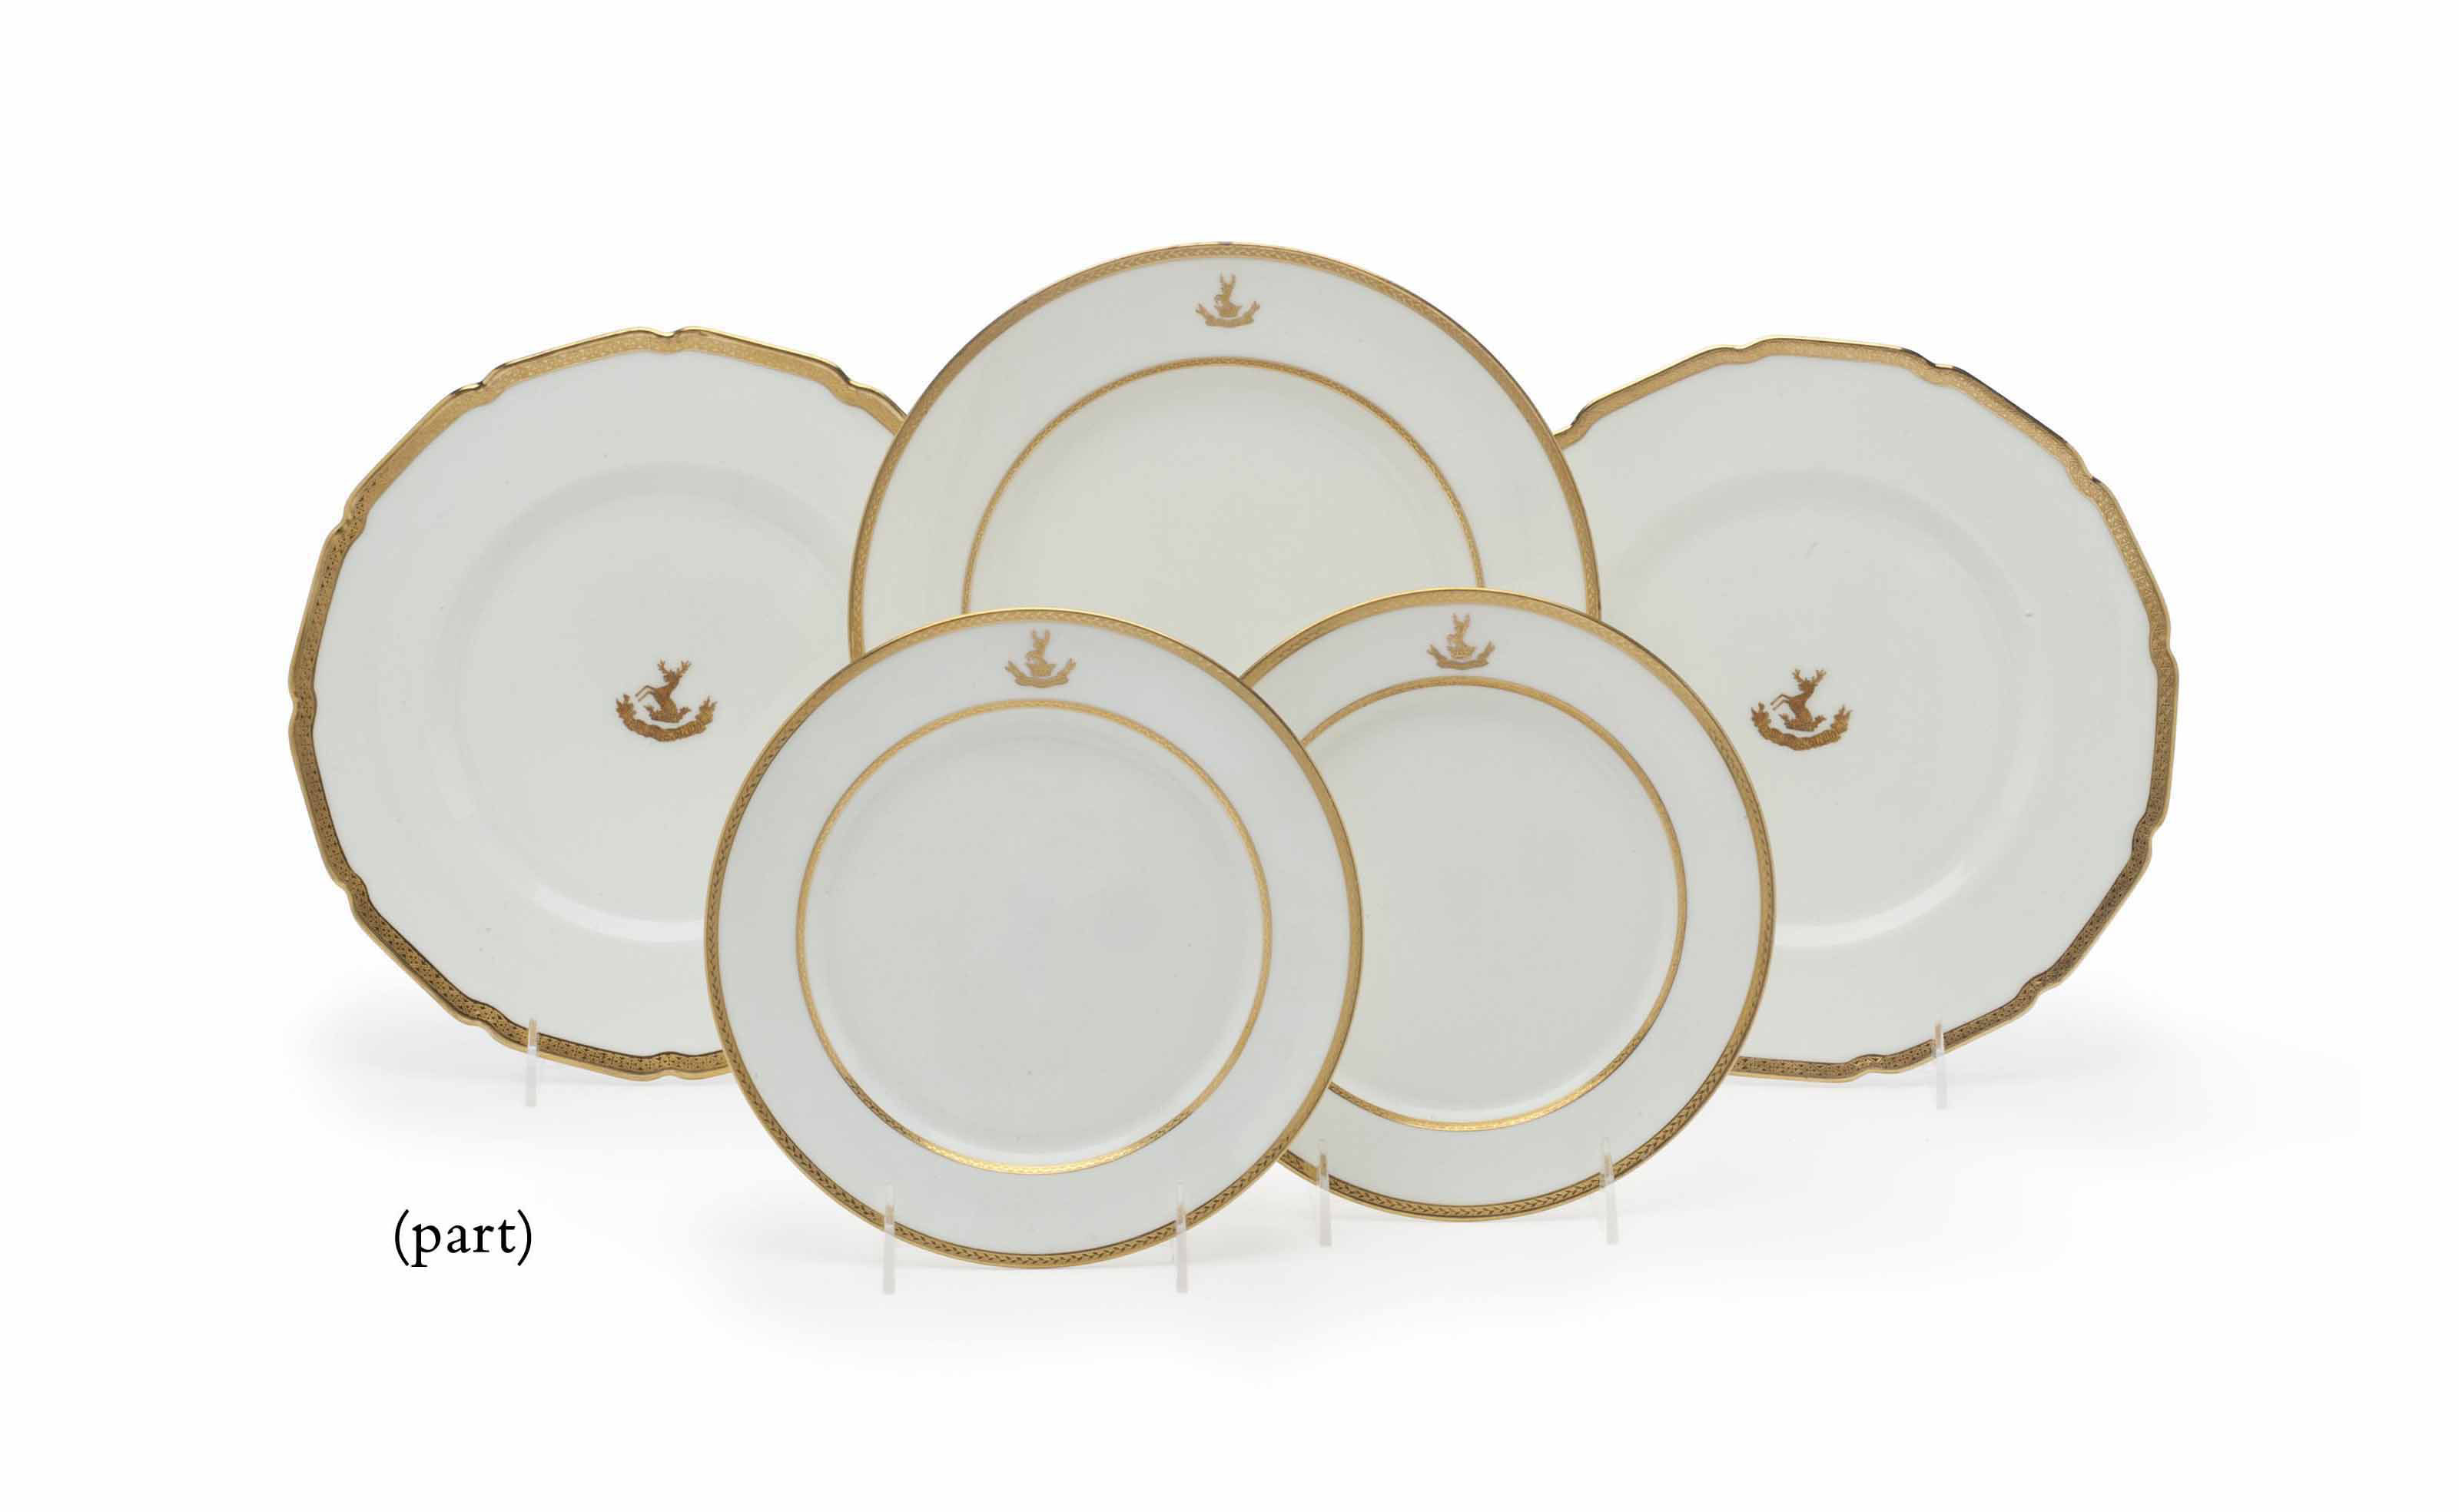 SEVENTY-FOUR ROYAL DOULTON CRESTED DINNER AND SIDE PLATES